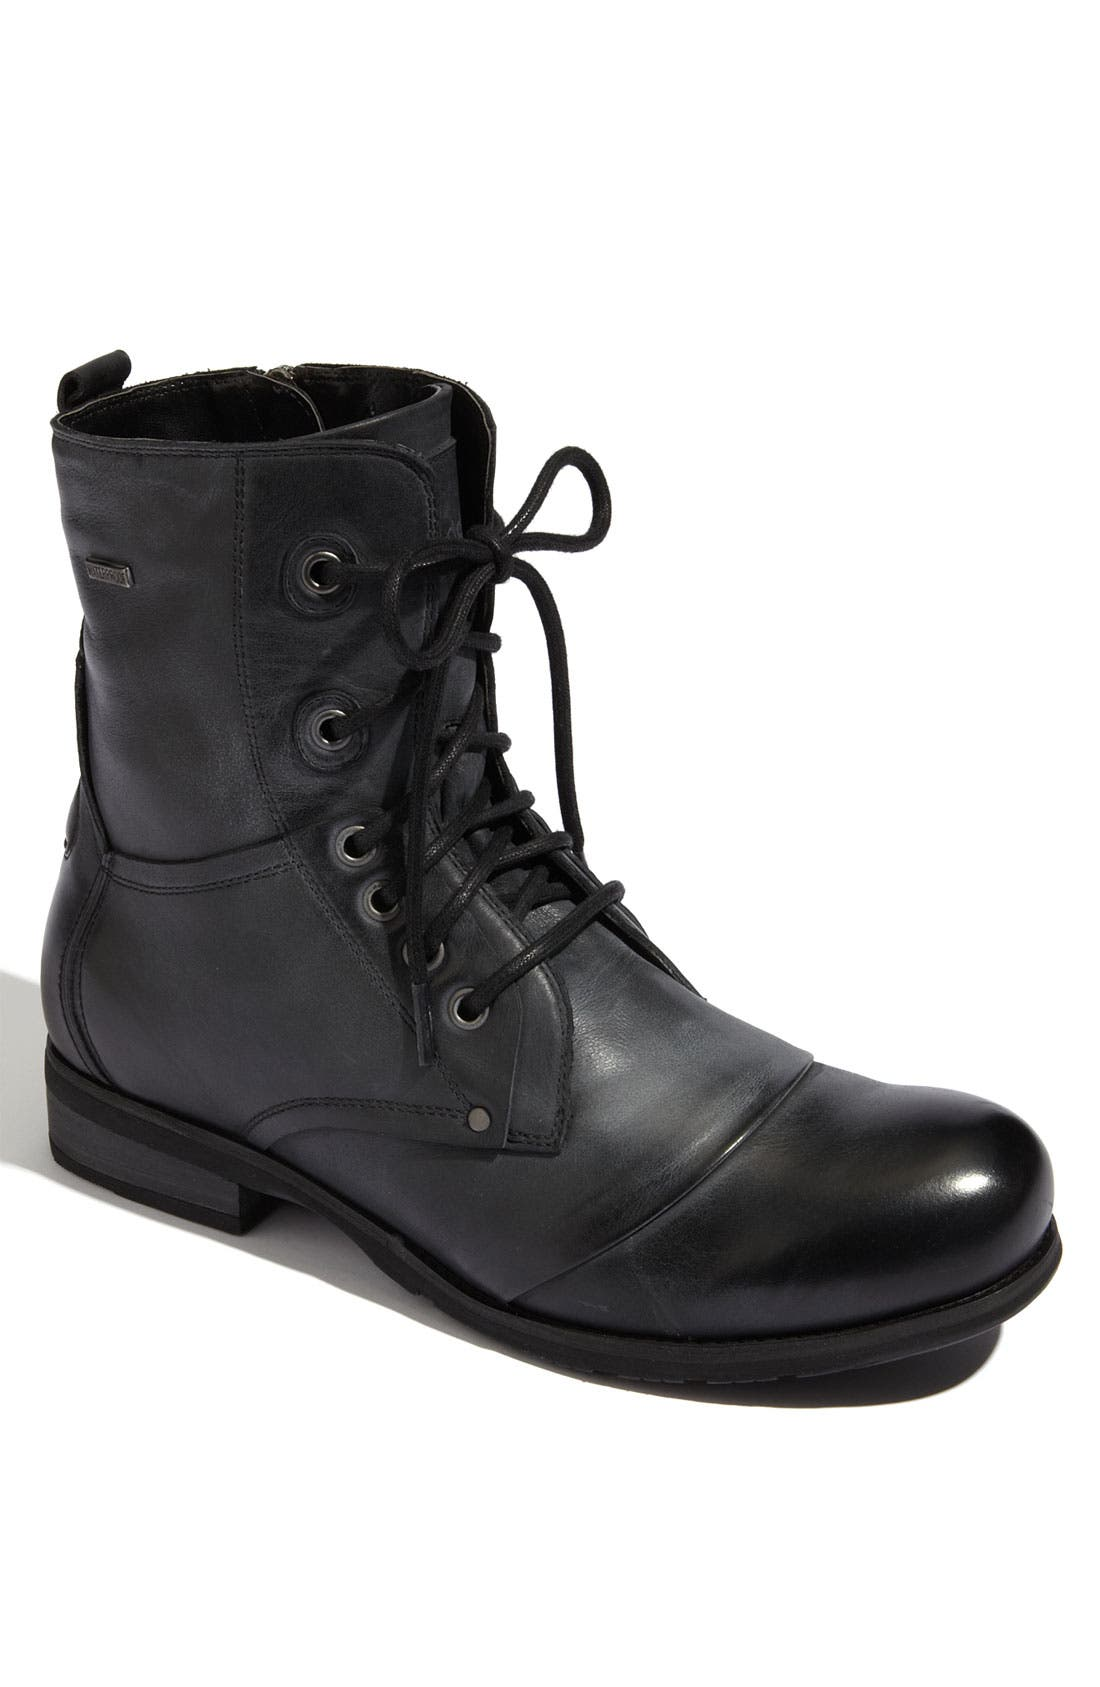 Main Image - Blondo 'Blunt' Waterproof Boot (Online Only)